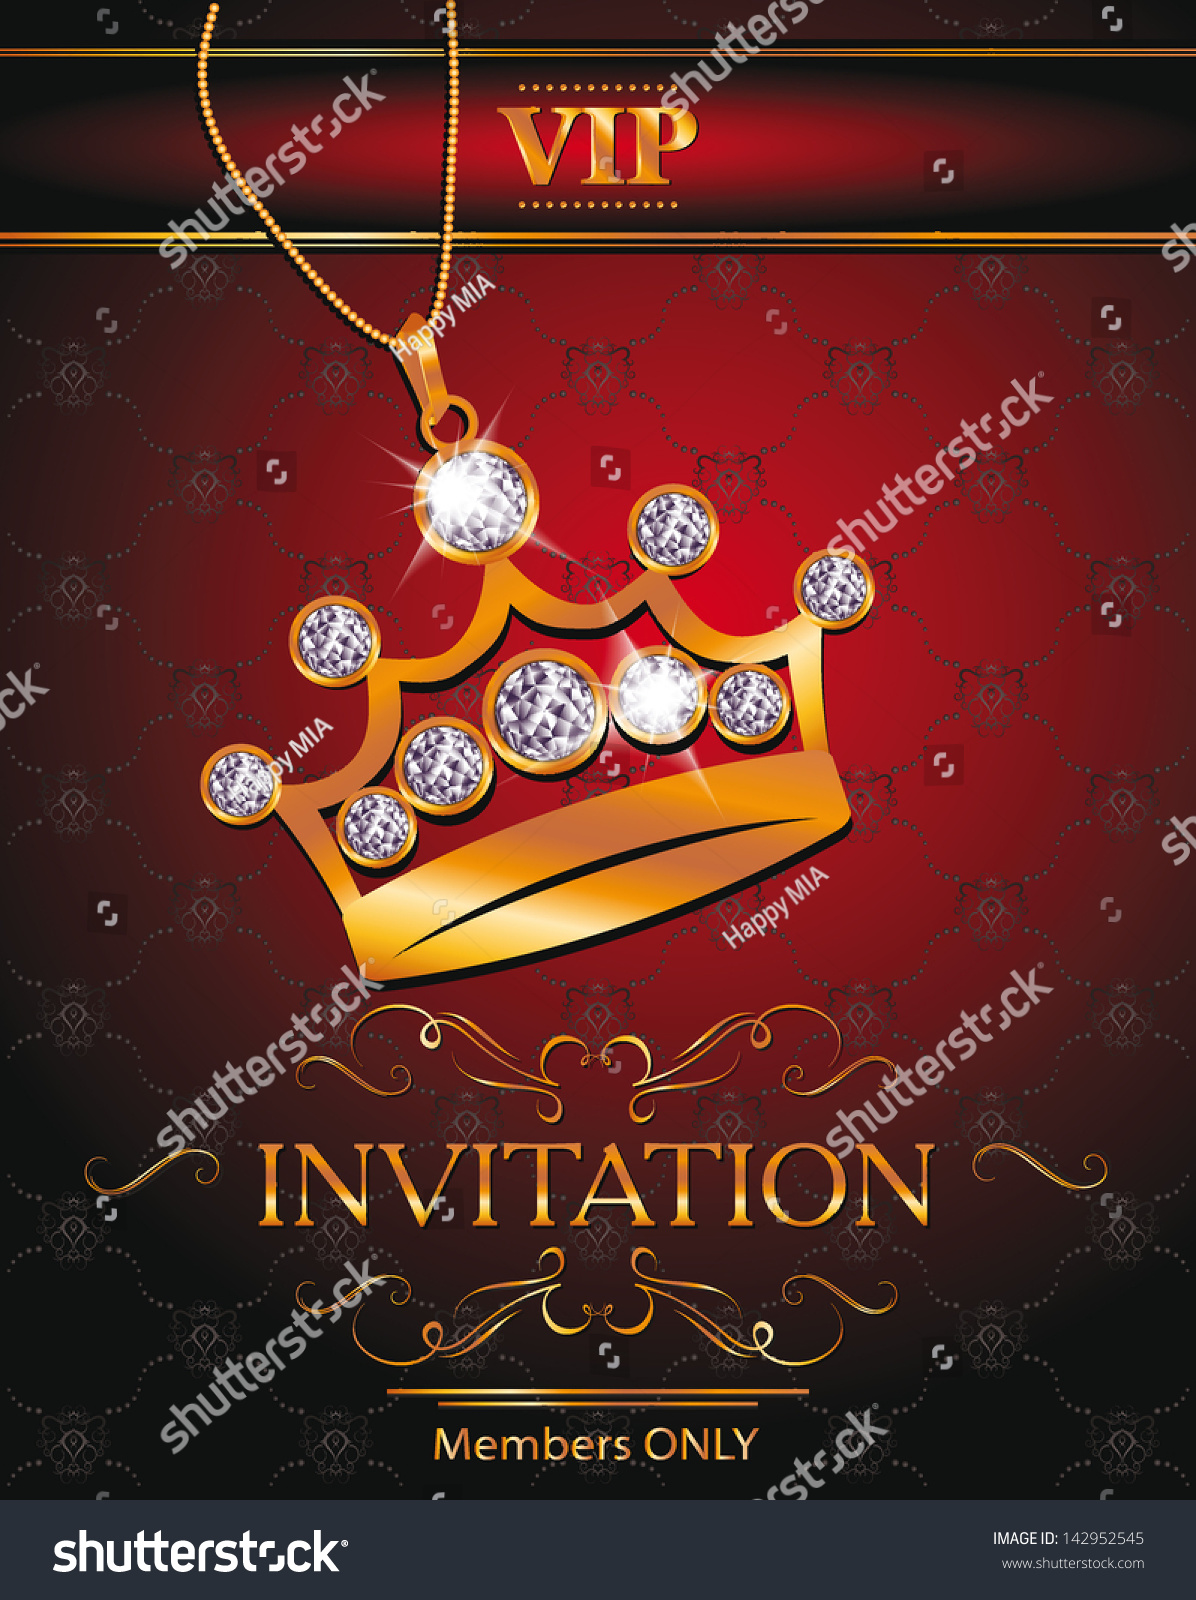 invitation vip card gold crown shaped stock vector 142952545